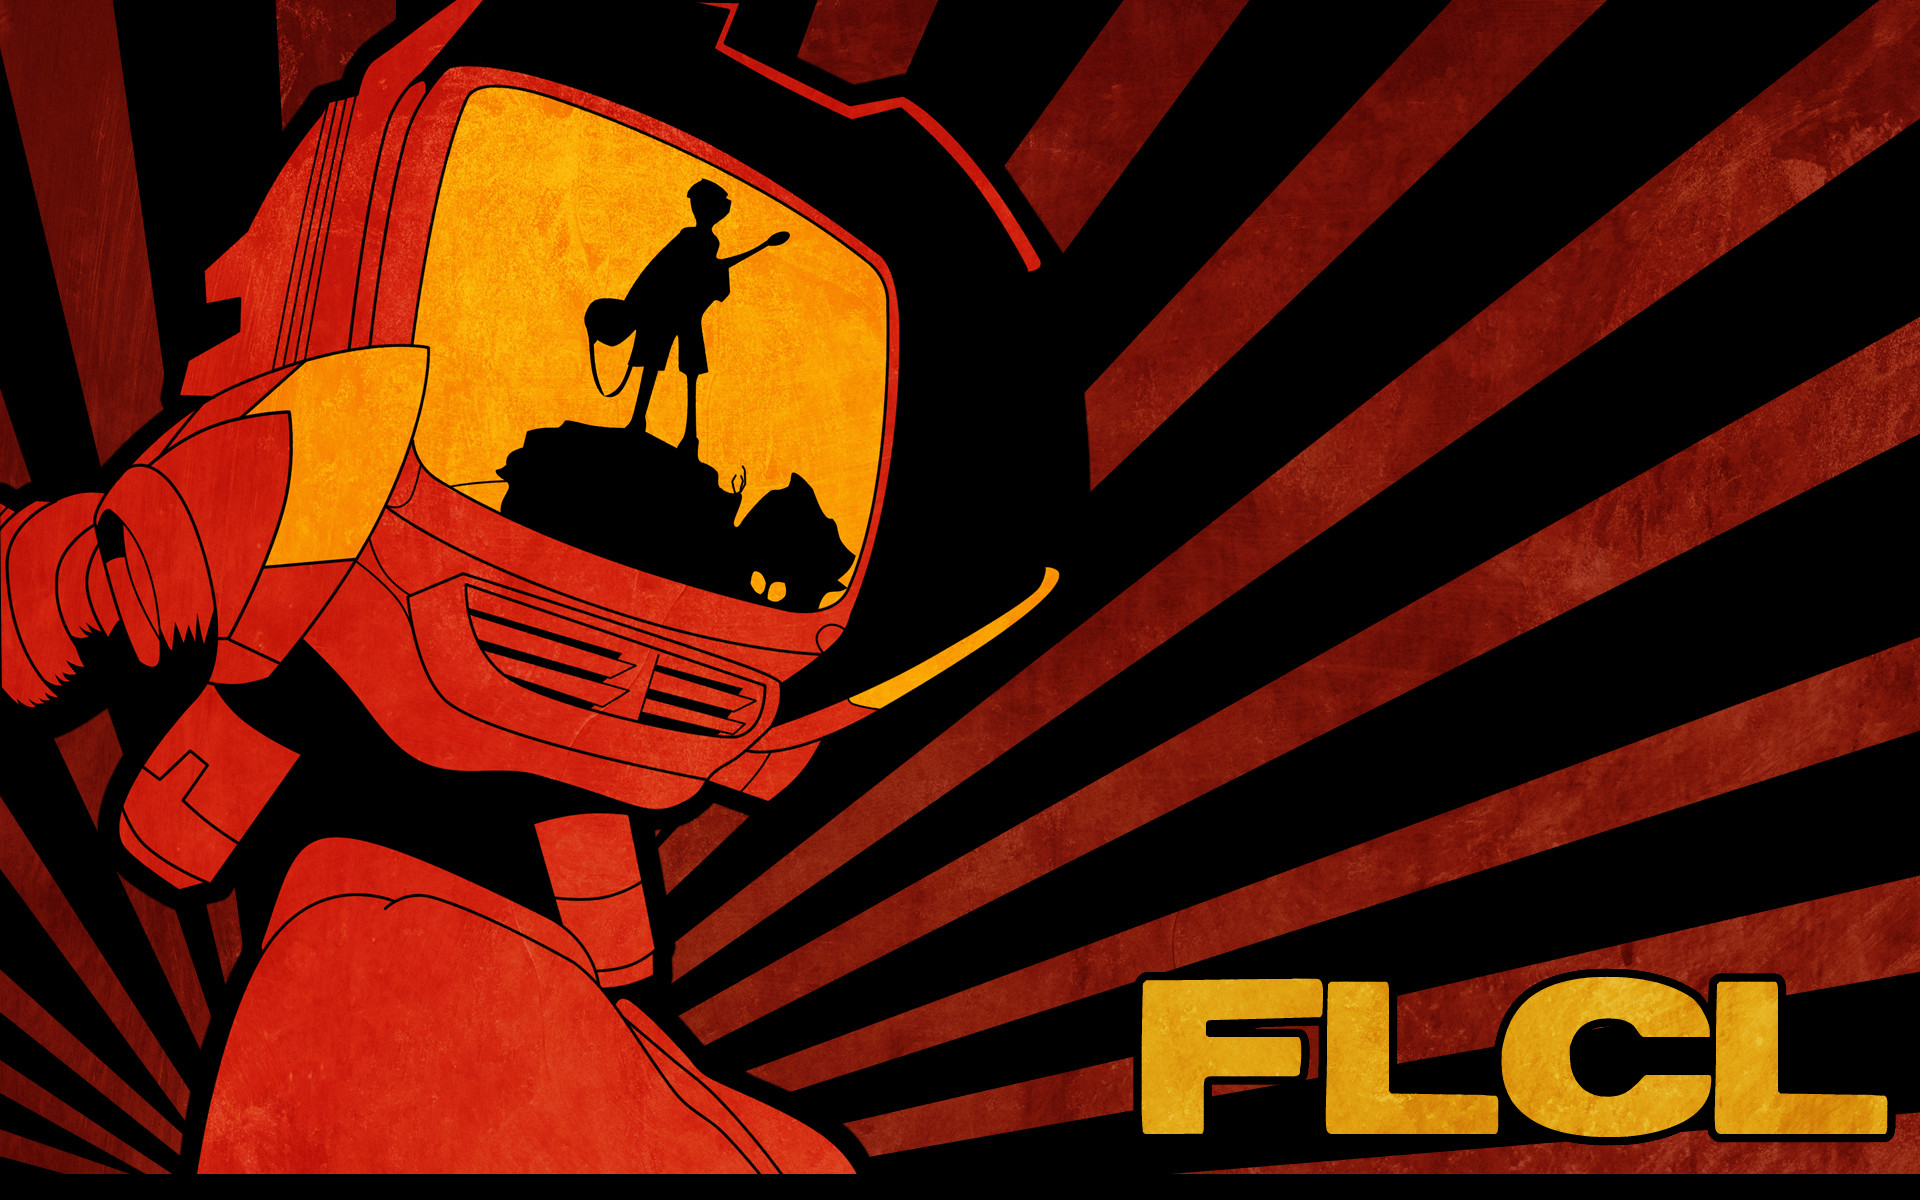 Flcl wallpapers 64 background pictures - Flcl wallpaper ...